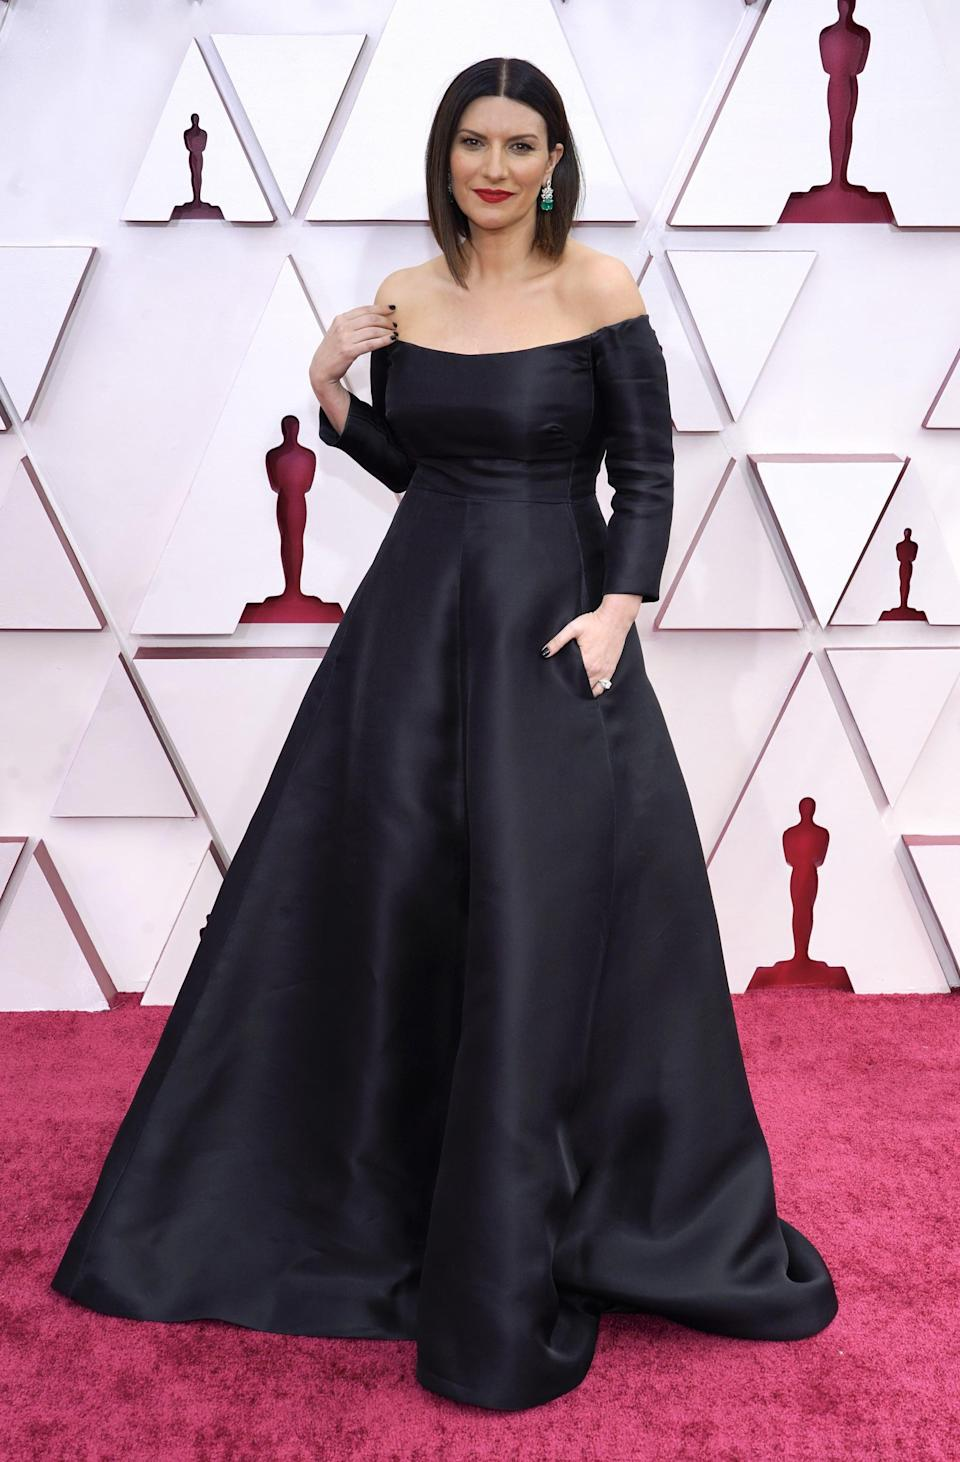 <p>Wearing a black off-the-shoulder gown.</p>